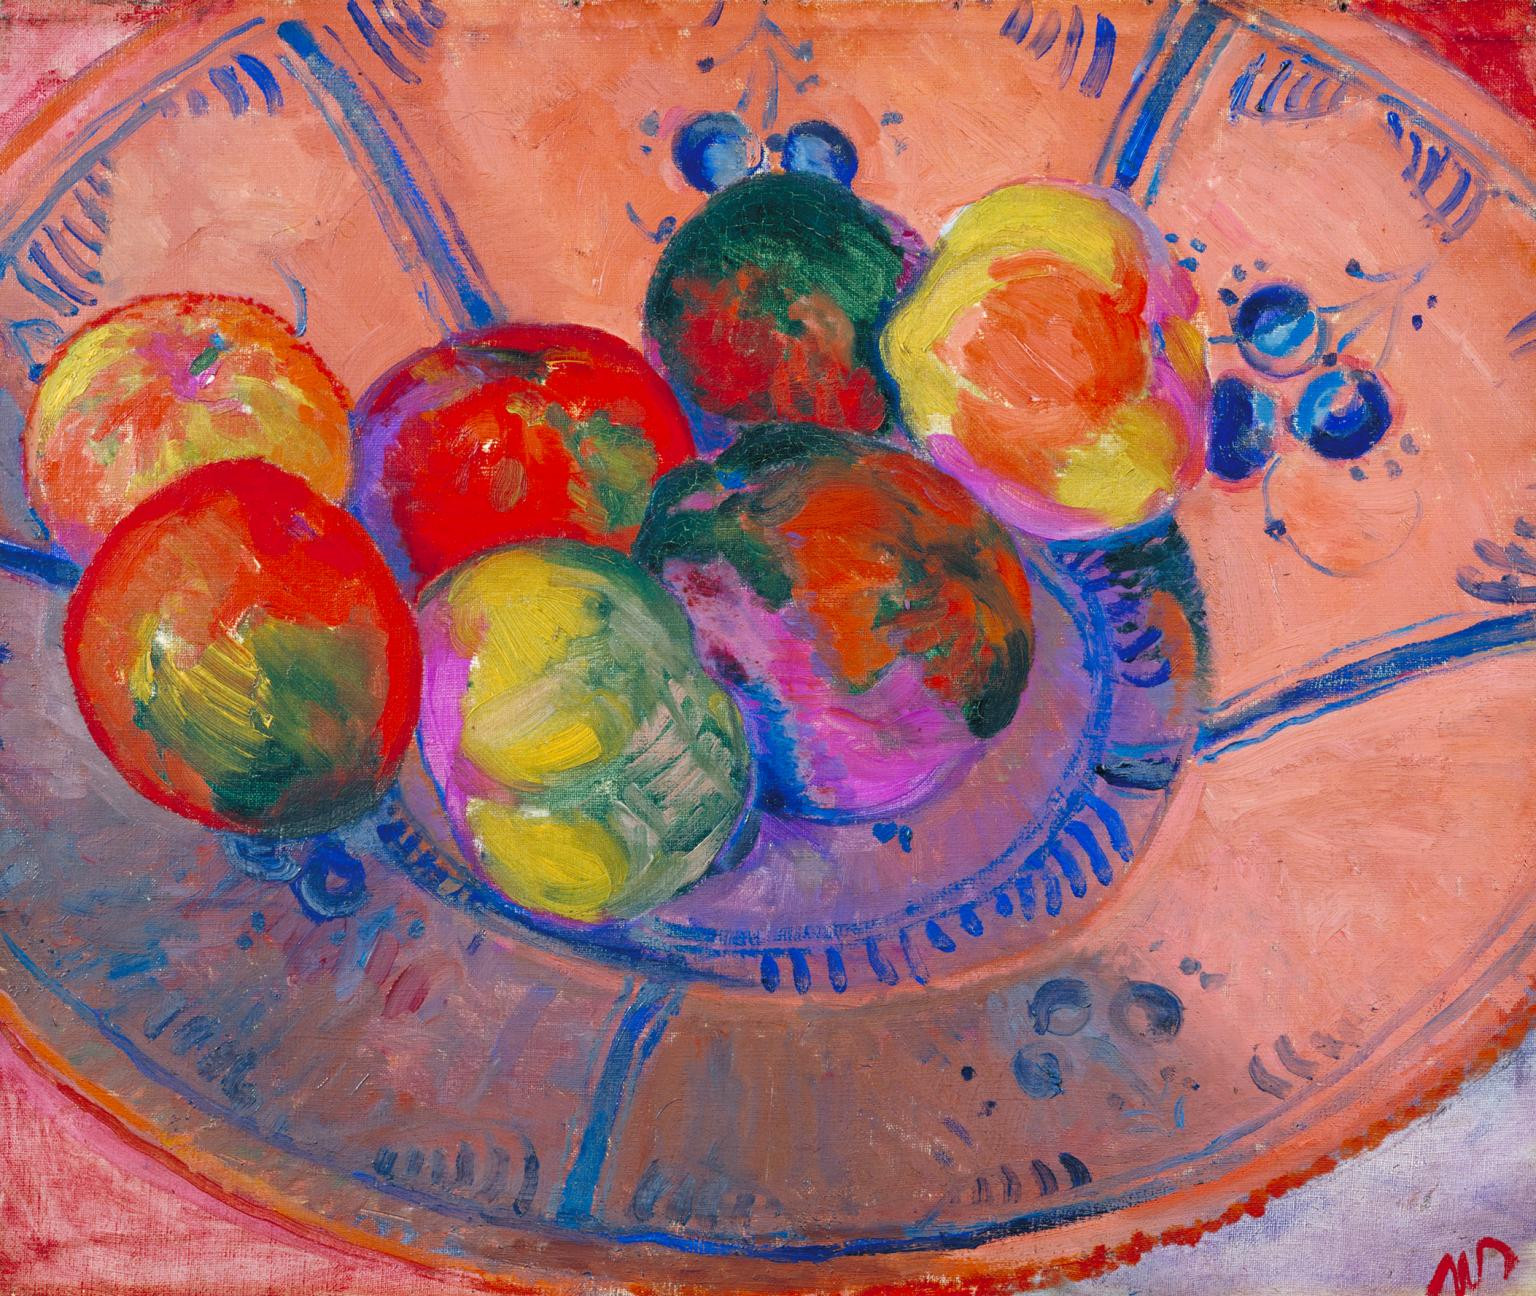 Exploring colour: oils and acrylics